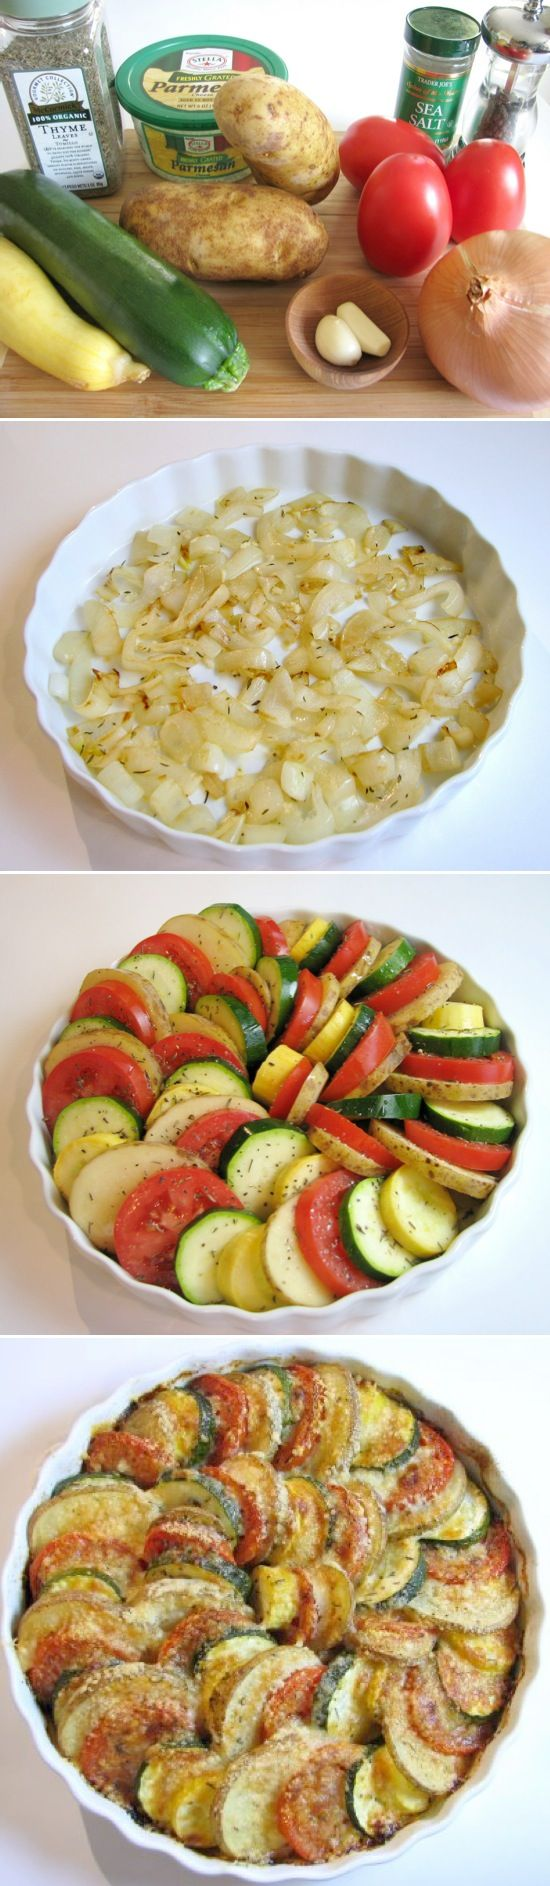 yup making this!